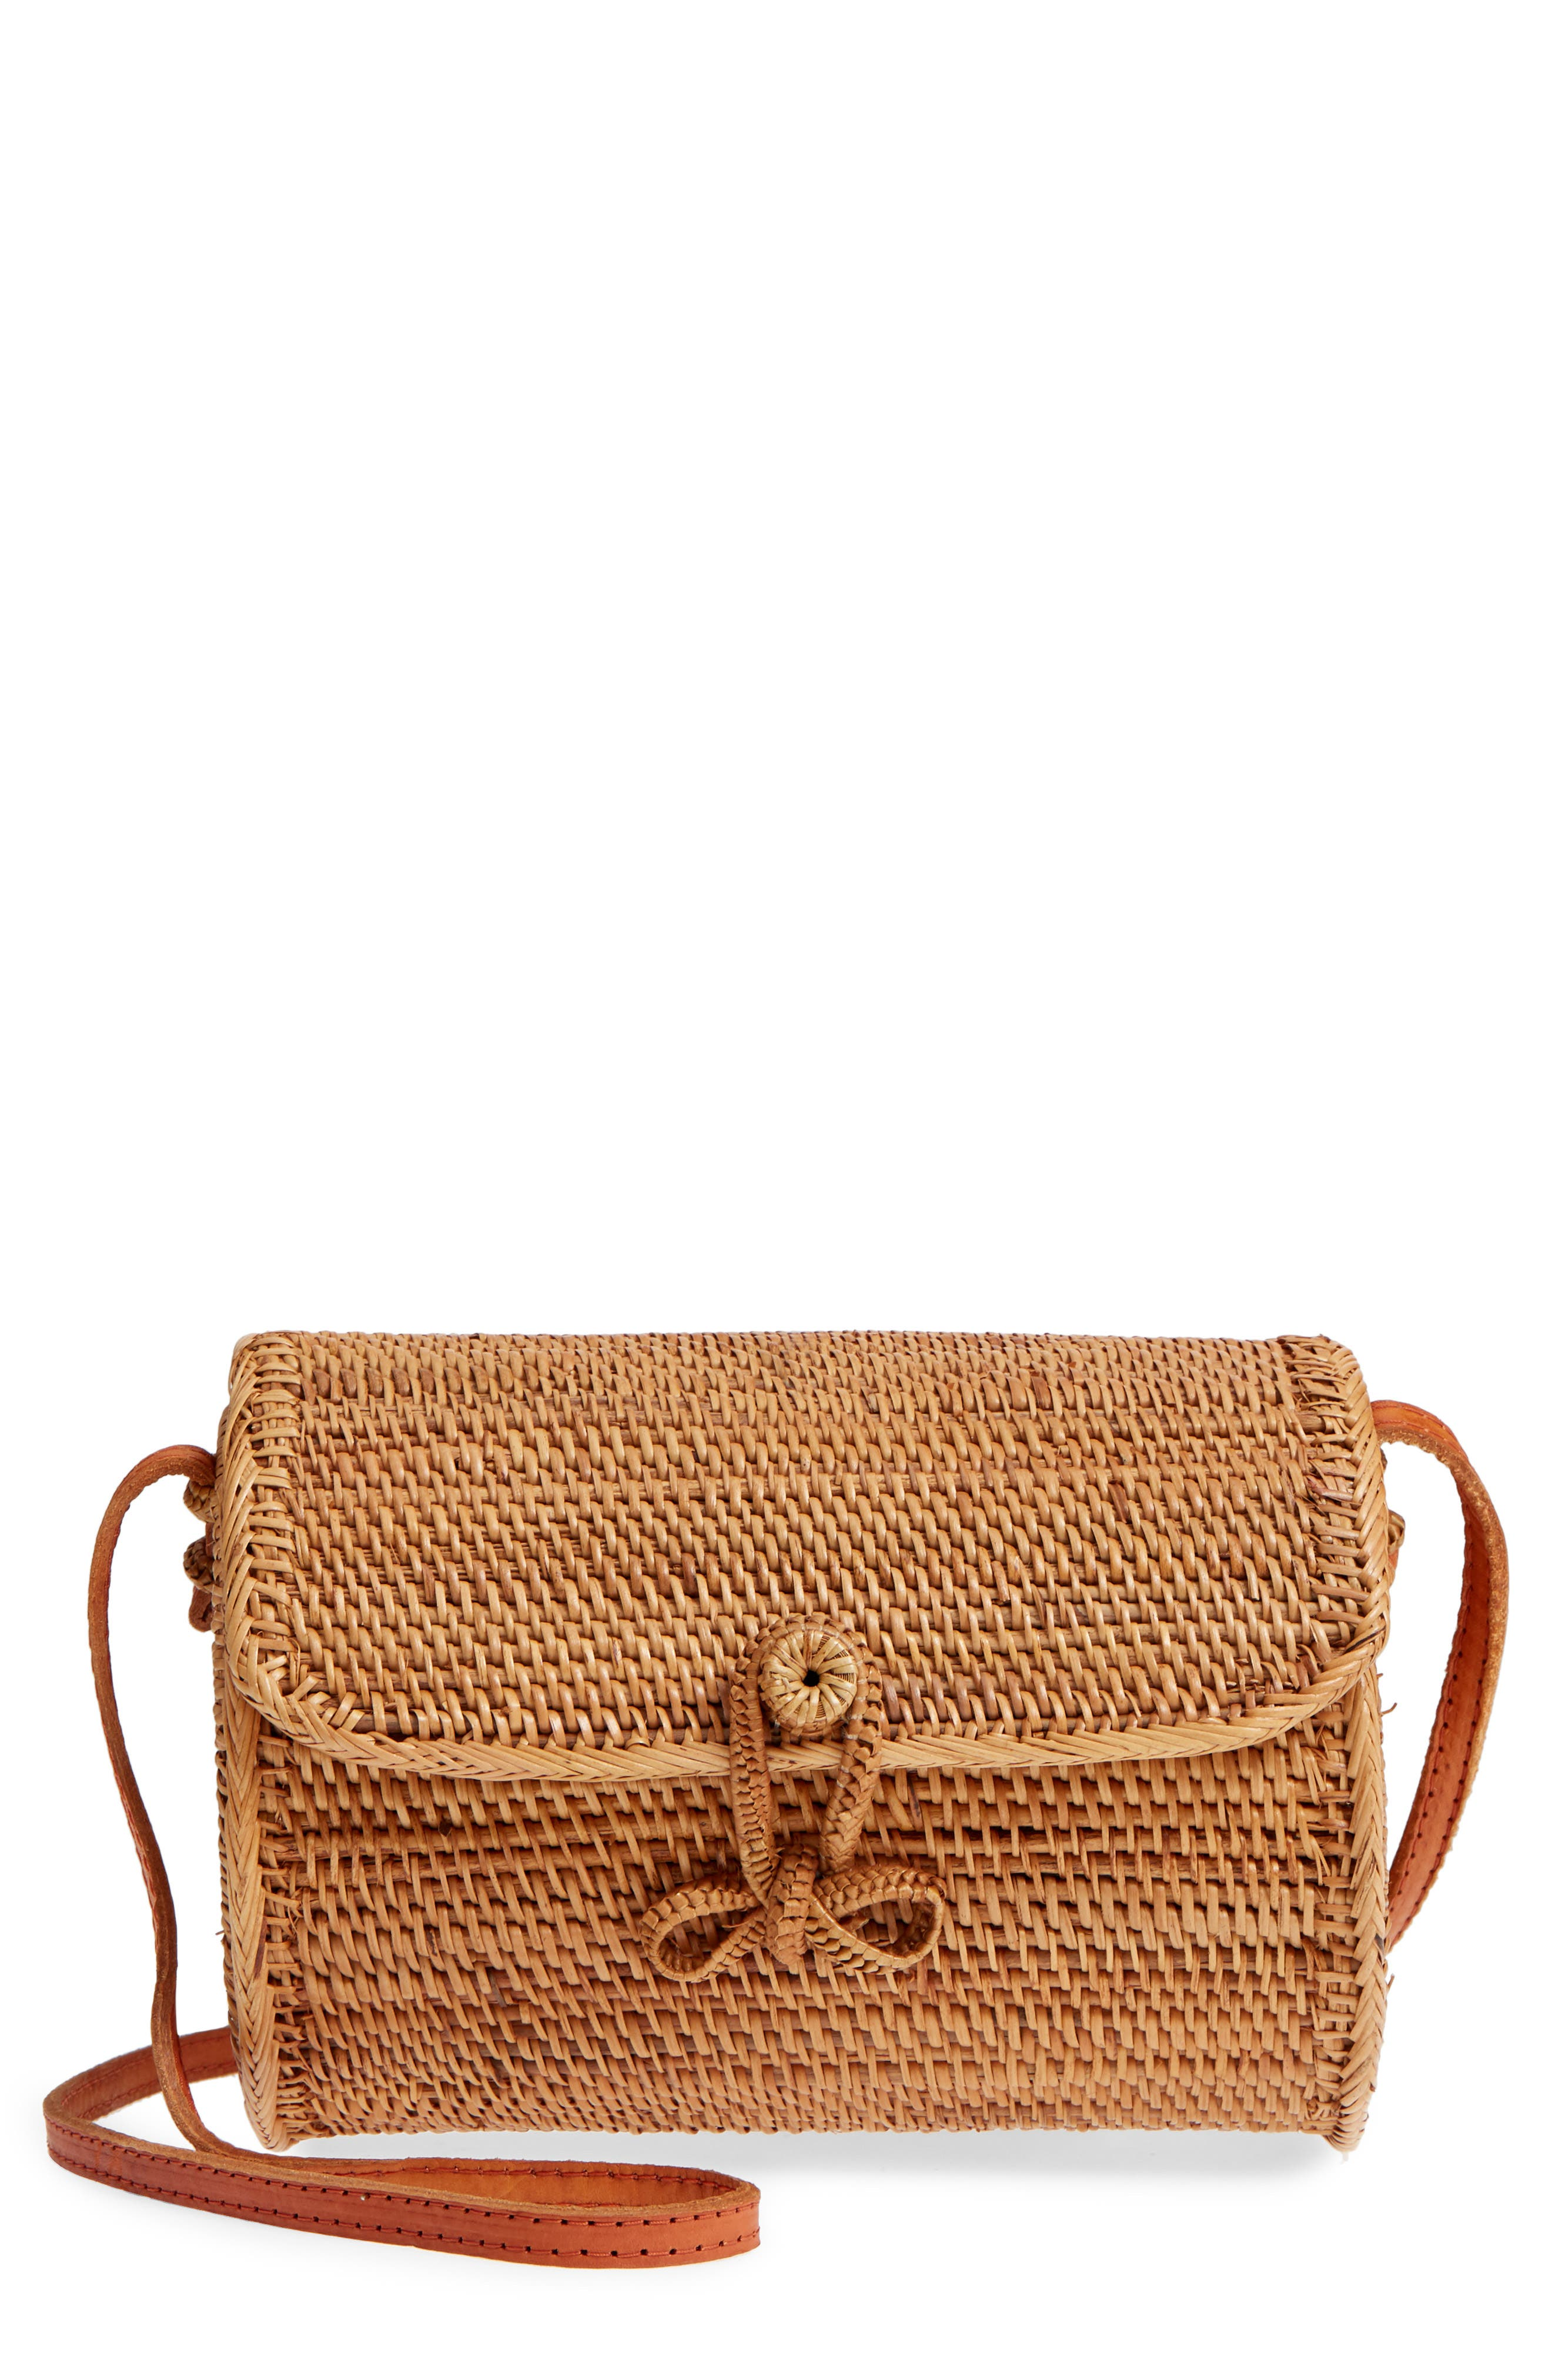 Cylinder Woven Crossbody Bag,                         Main,                         color, 230